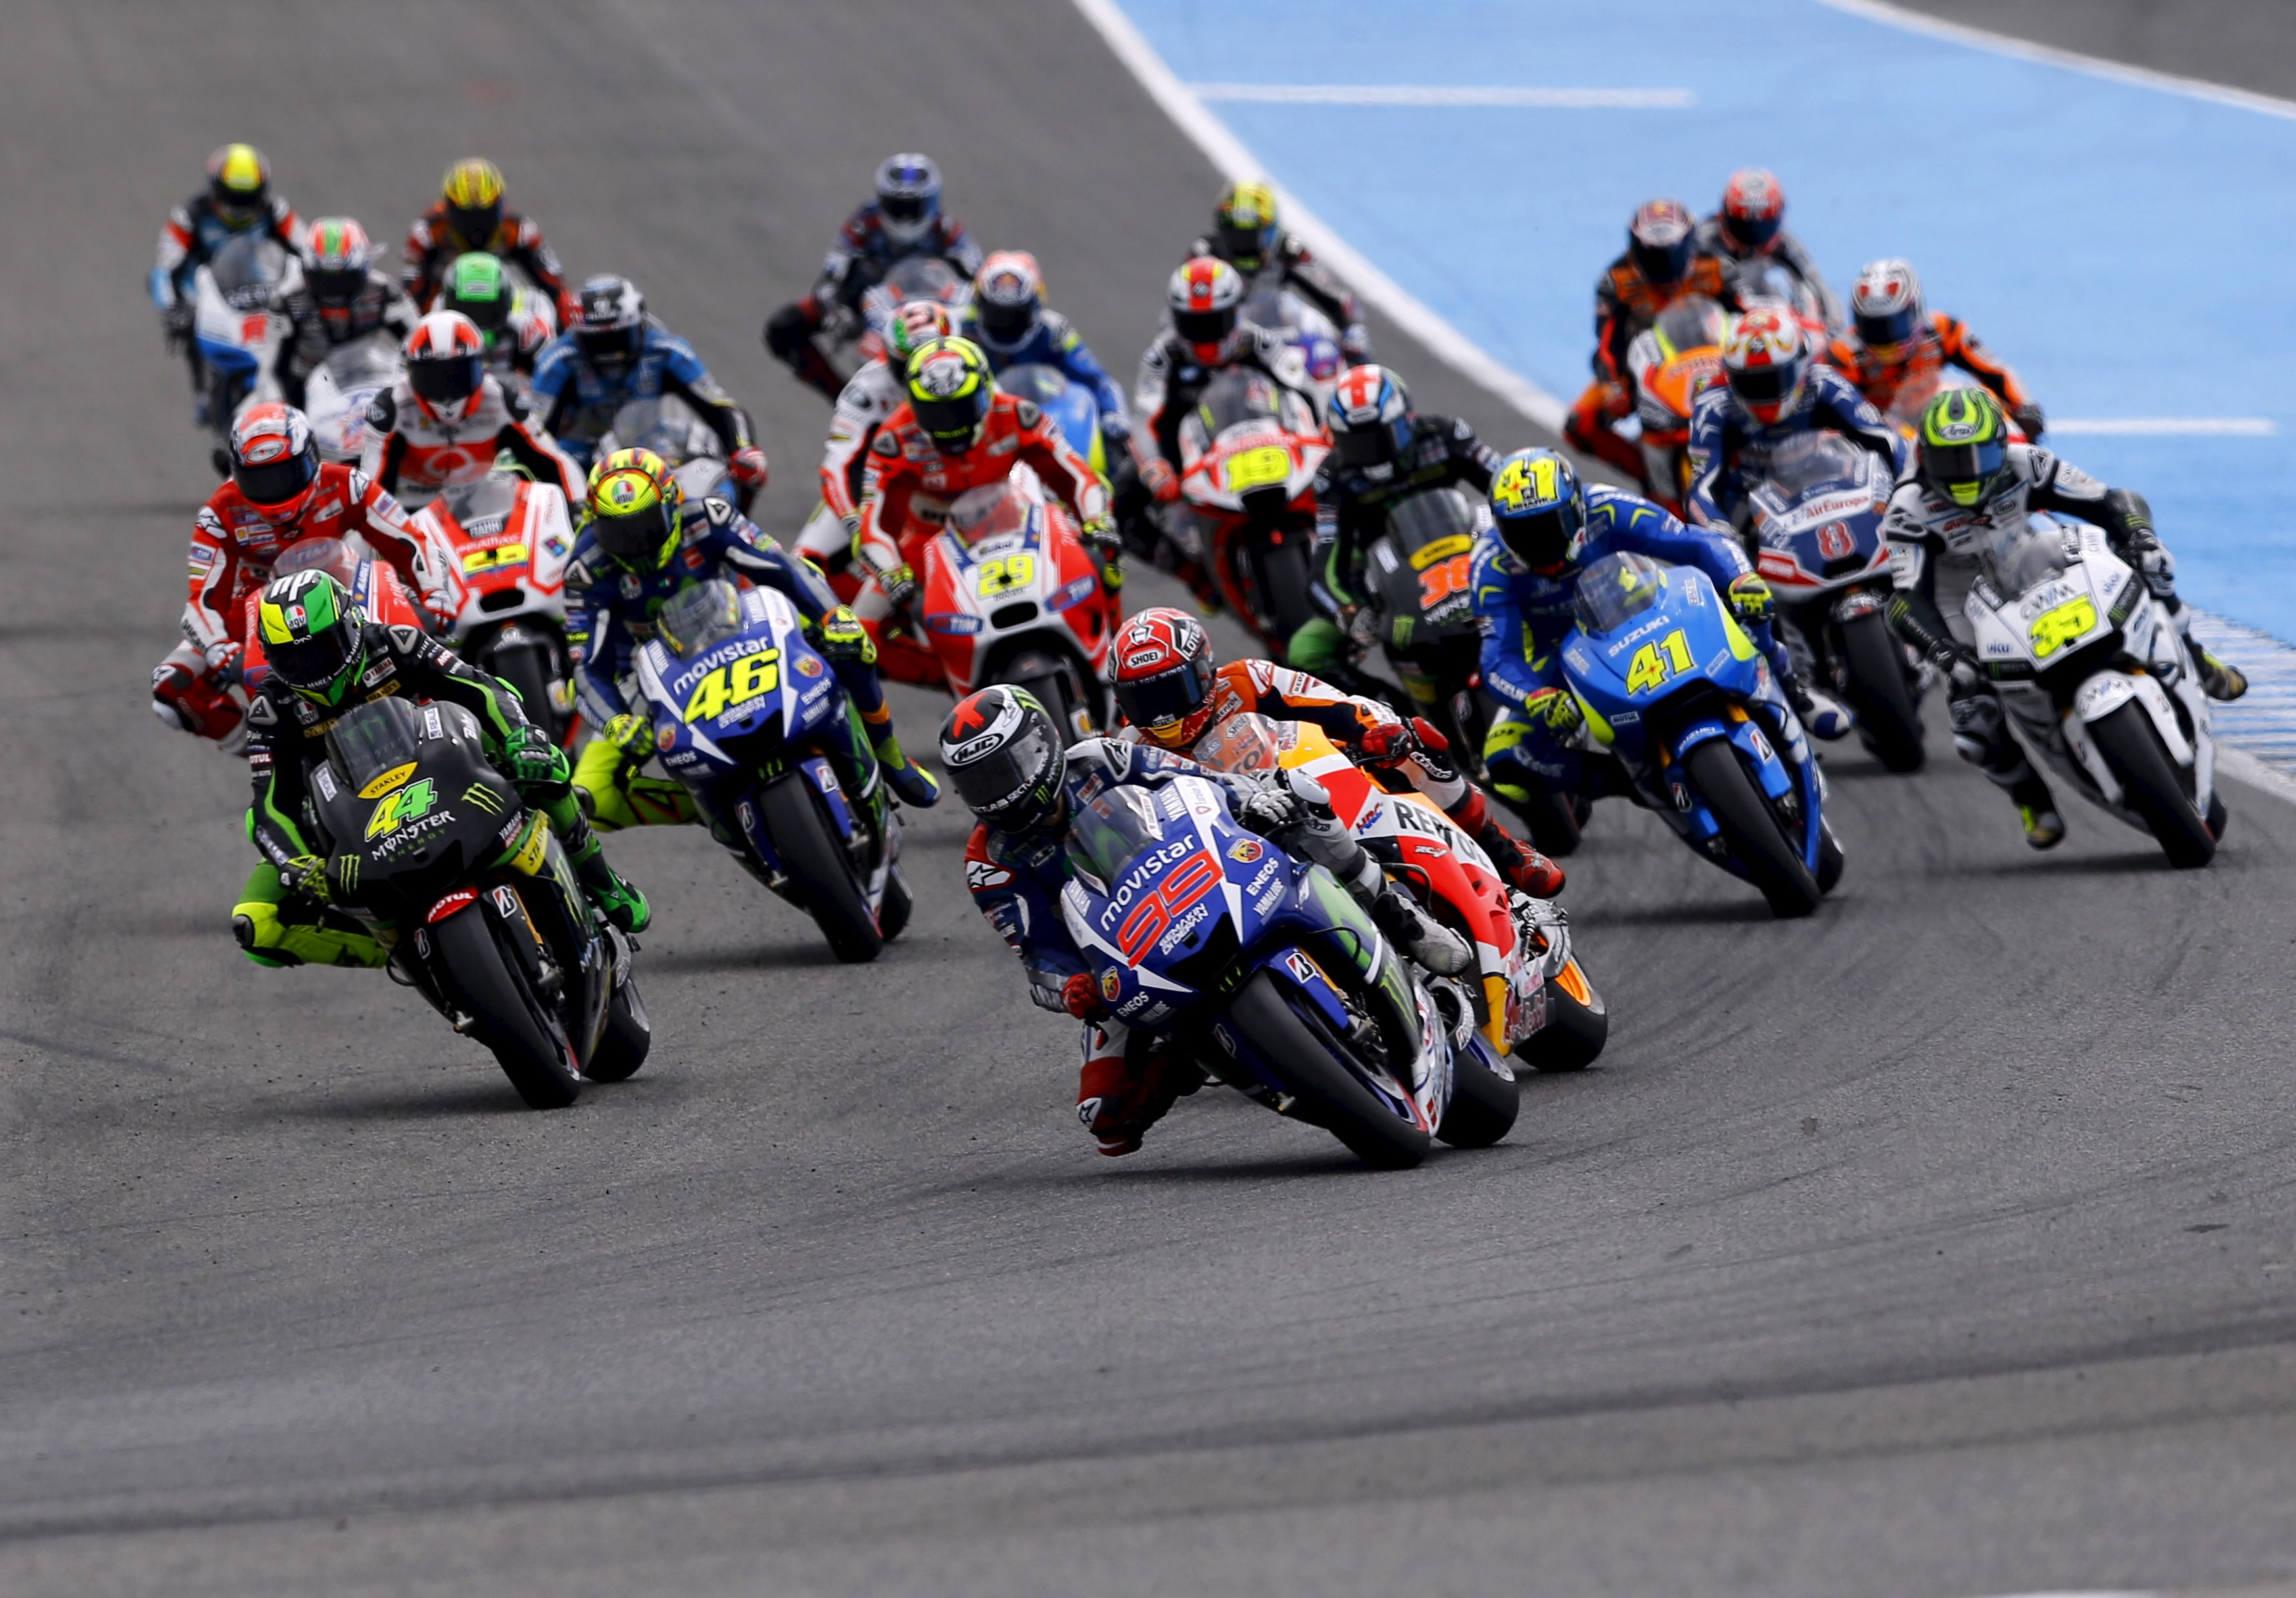 Czech Republic Grand Prixb Sun Aug 21 Live Motogp Online Streaming Without Any Buffering Or Ads Watch On Your Mobile Pc La Online Streaming Pc Laptop Motogp